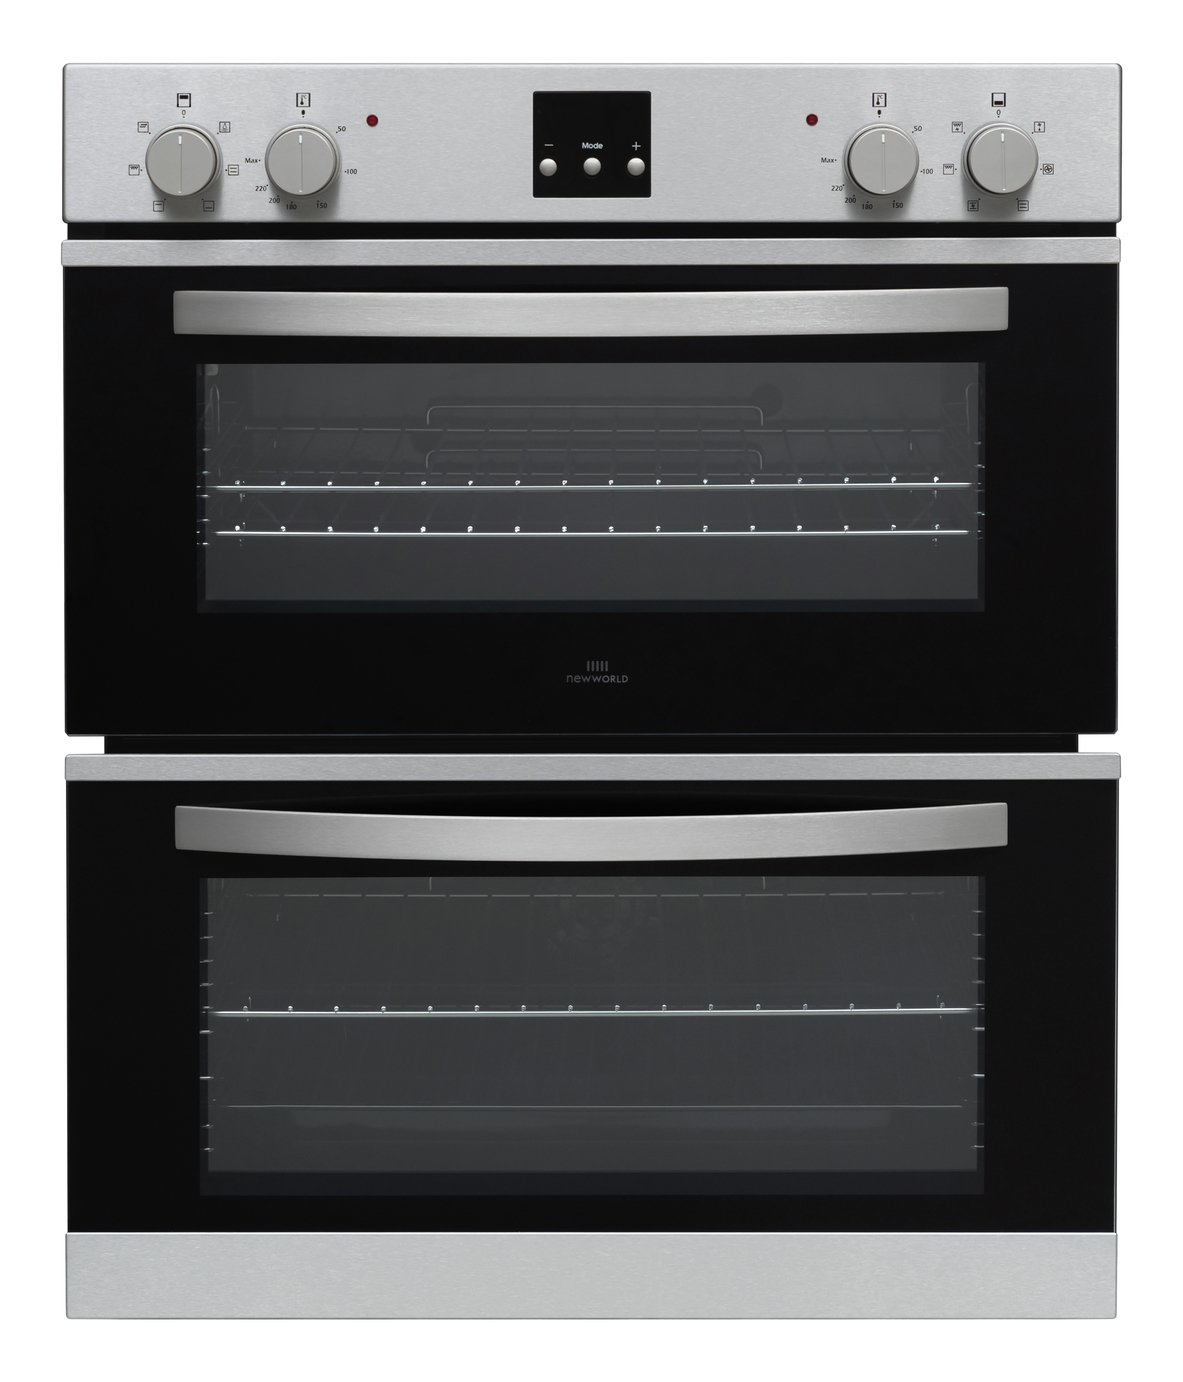 New World NWCMBUOI Built Under Double Electric Oven - Inox